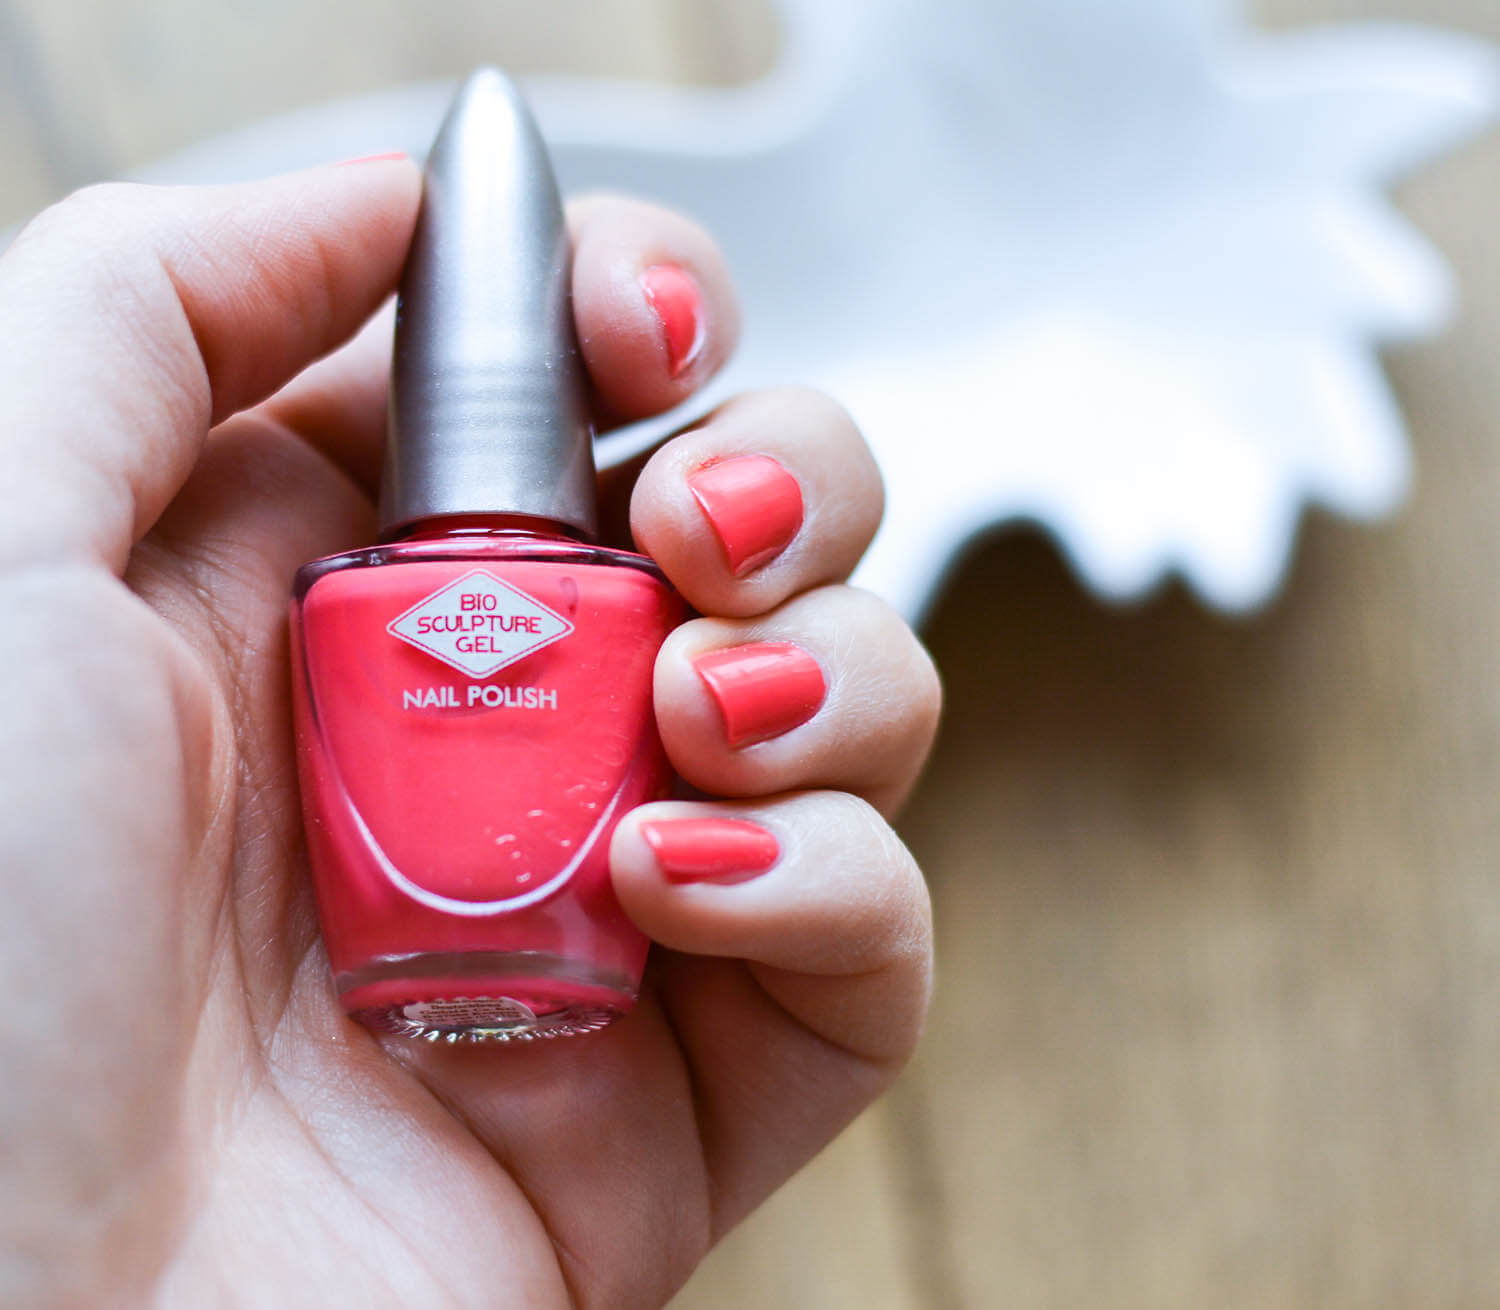 kationette-lifestyleblog-Beauty-current-Nail-Care-Faves-manicure